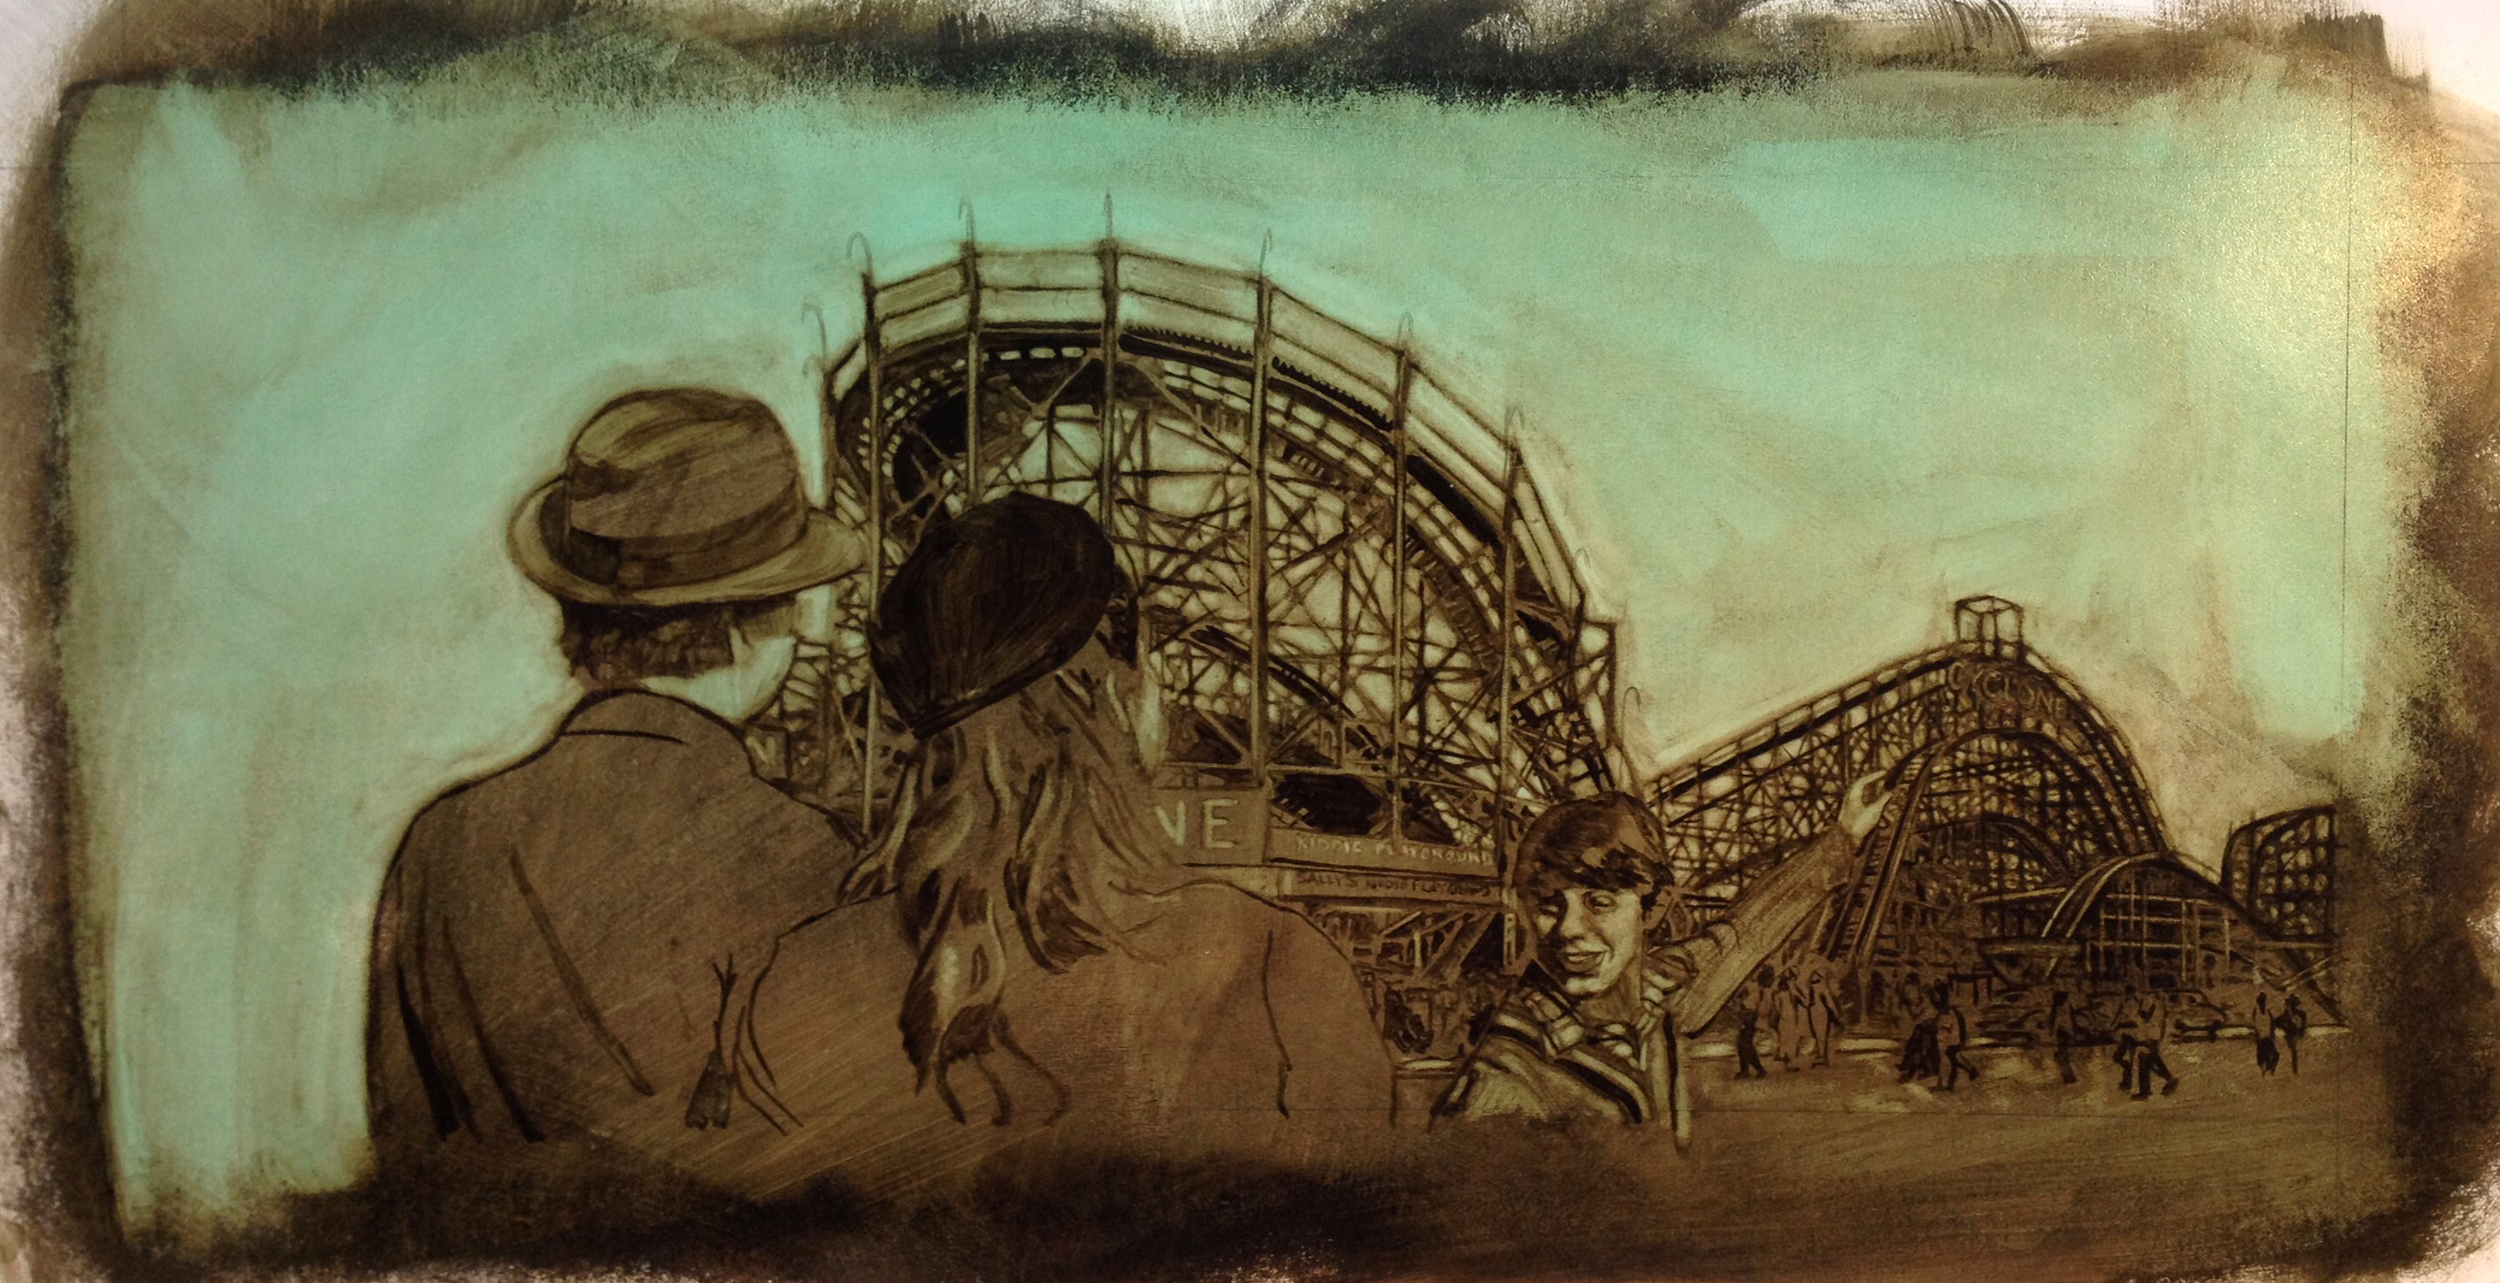 Arriving at Coney Island Underpainting